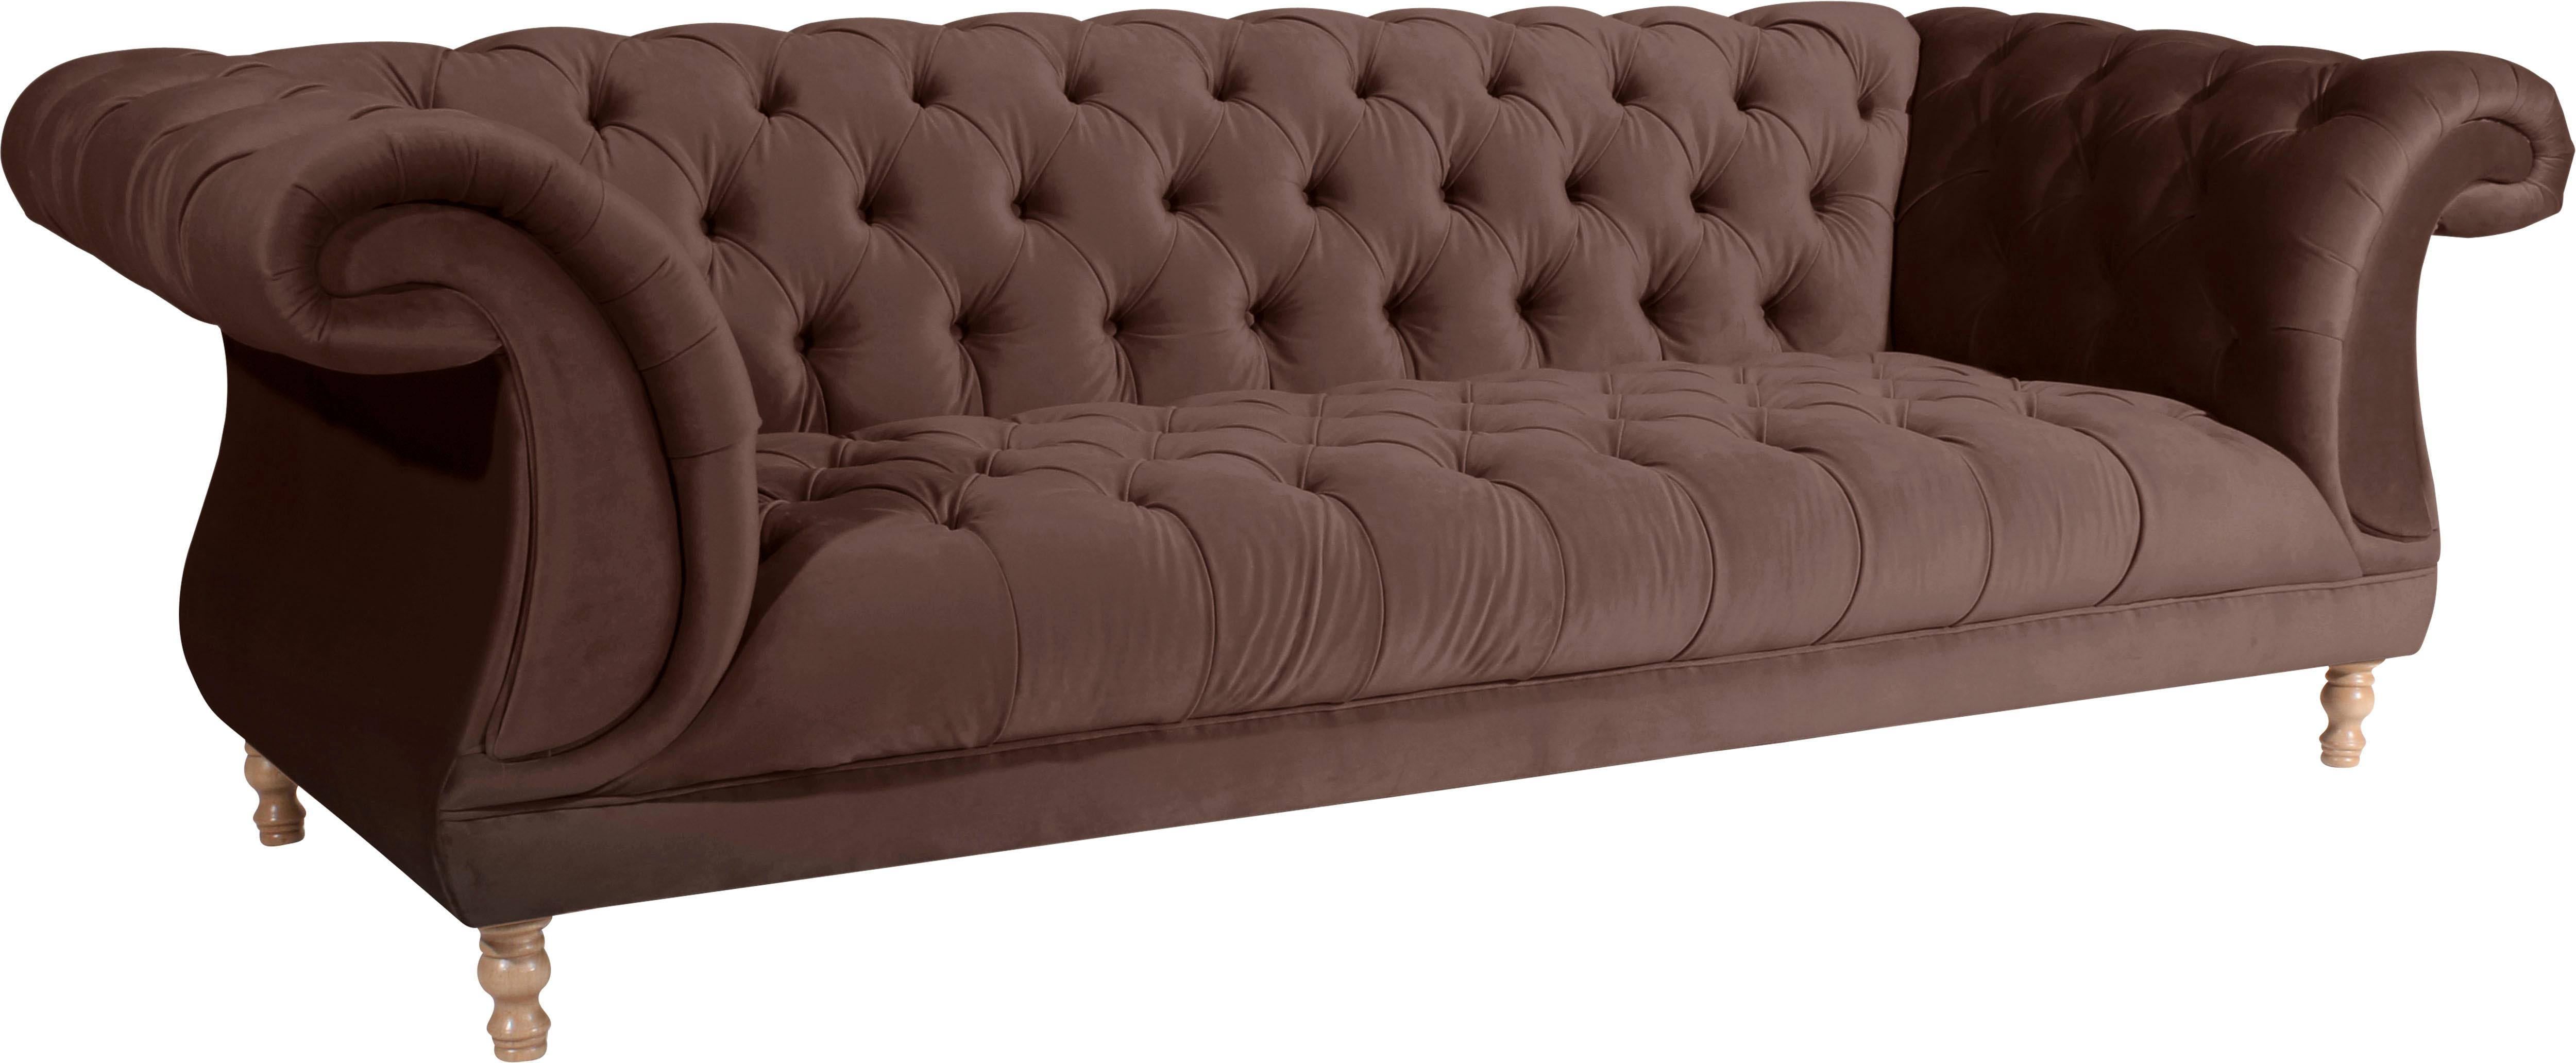 Max Winzer Chesterfield-Sofa Isabelle   Wohnzimmer > Sofas & Couches > Chesterfield Sofas   Max Winzer